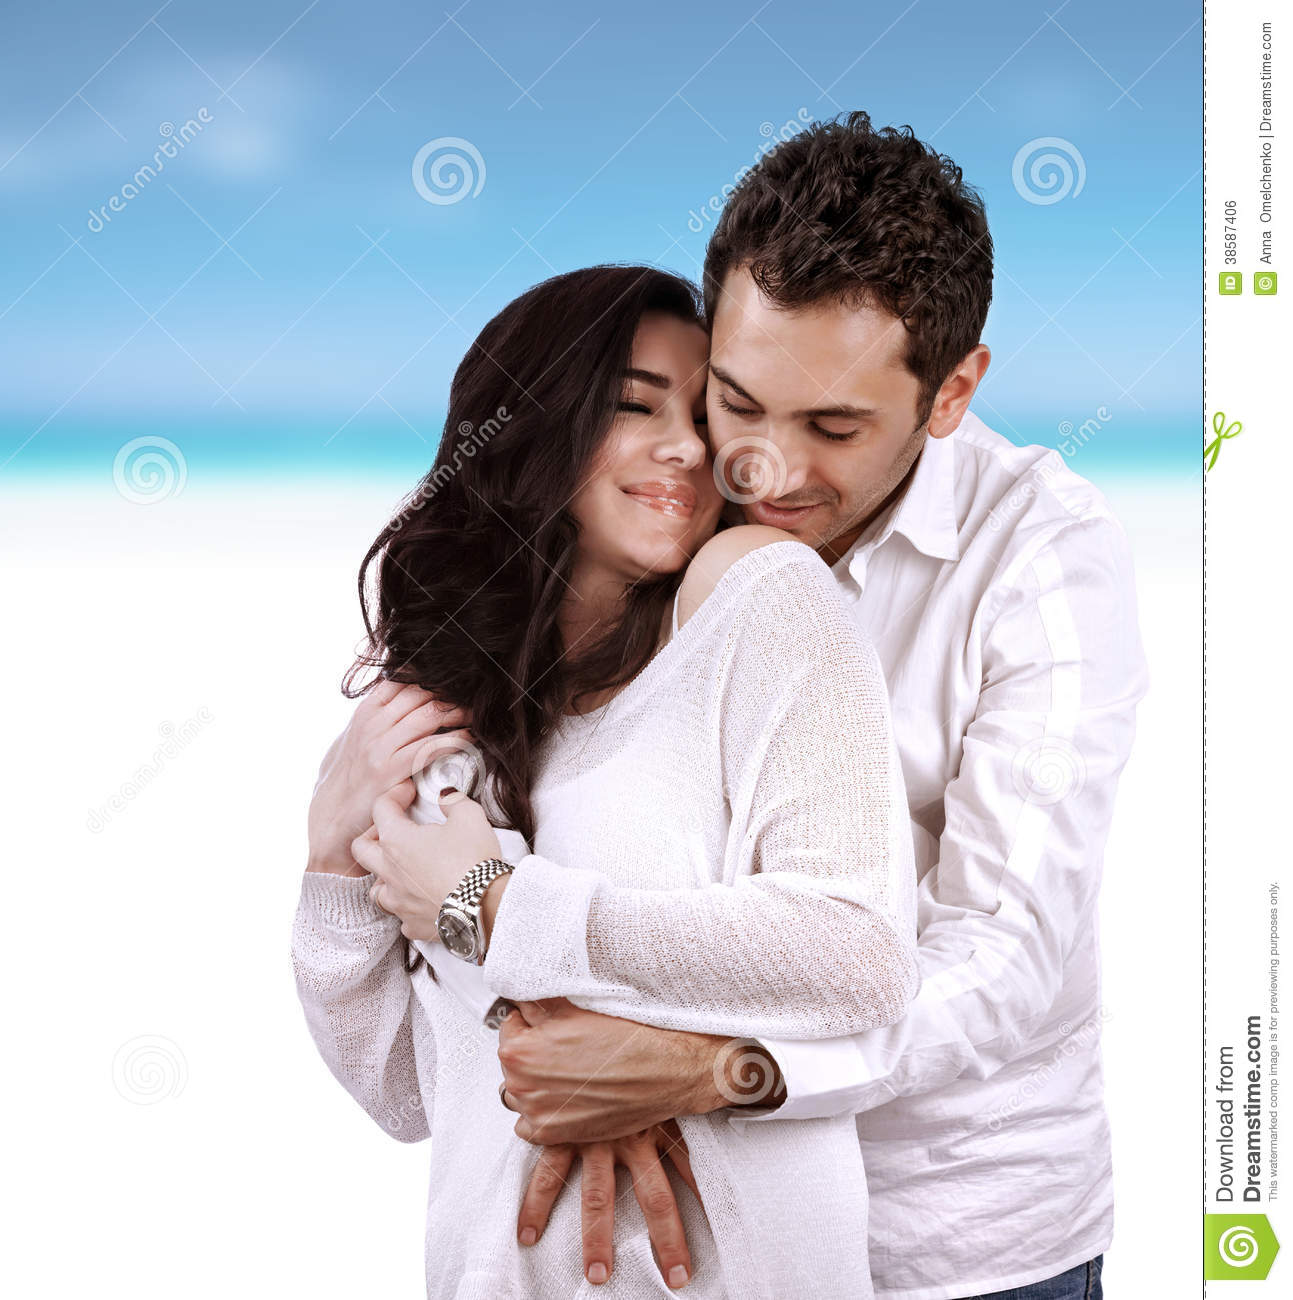 Family Enjoying Time Together On Beautiful Foggy Beach: Happy Lovers On Vacation Stock Photo. Image Of Beautiful